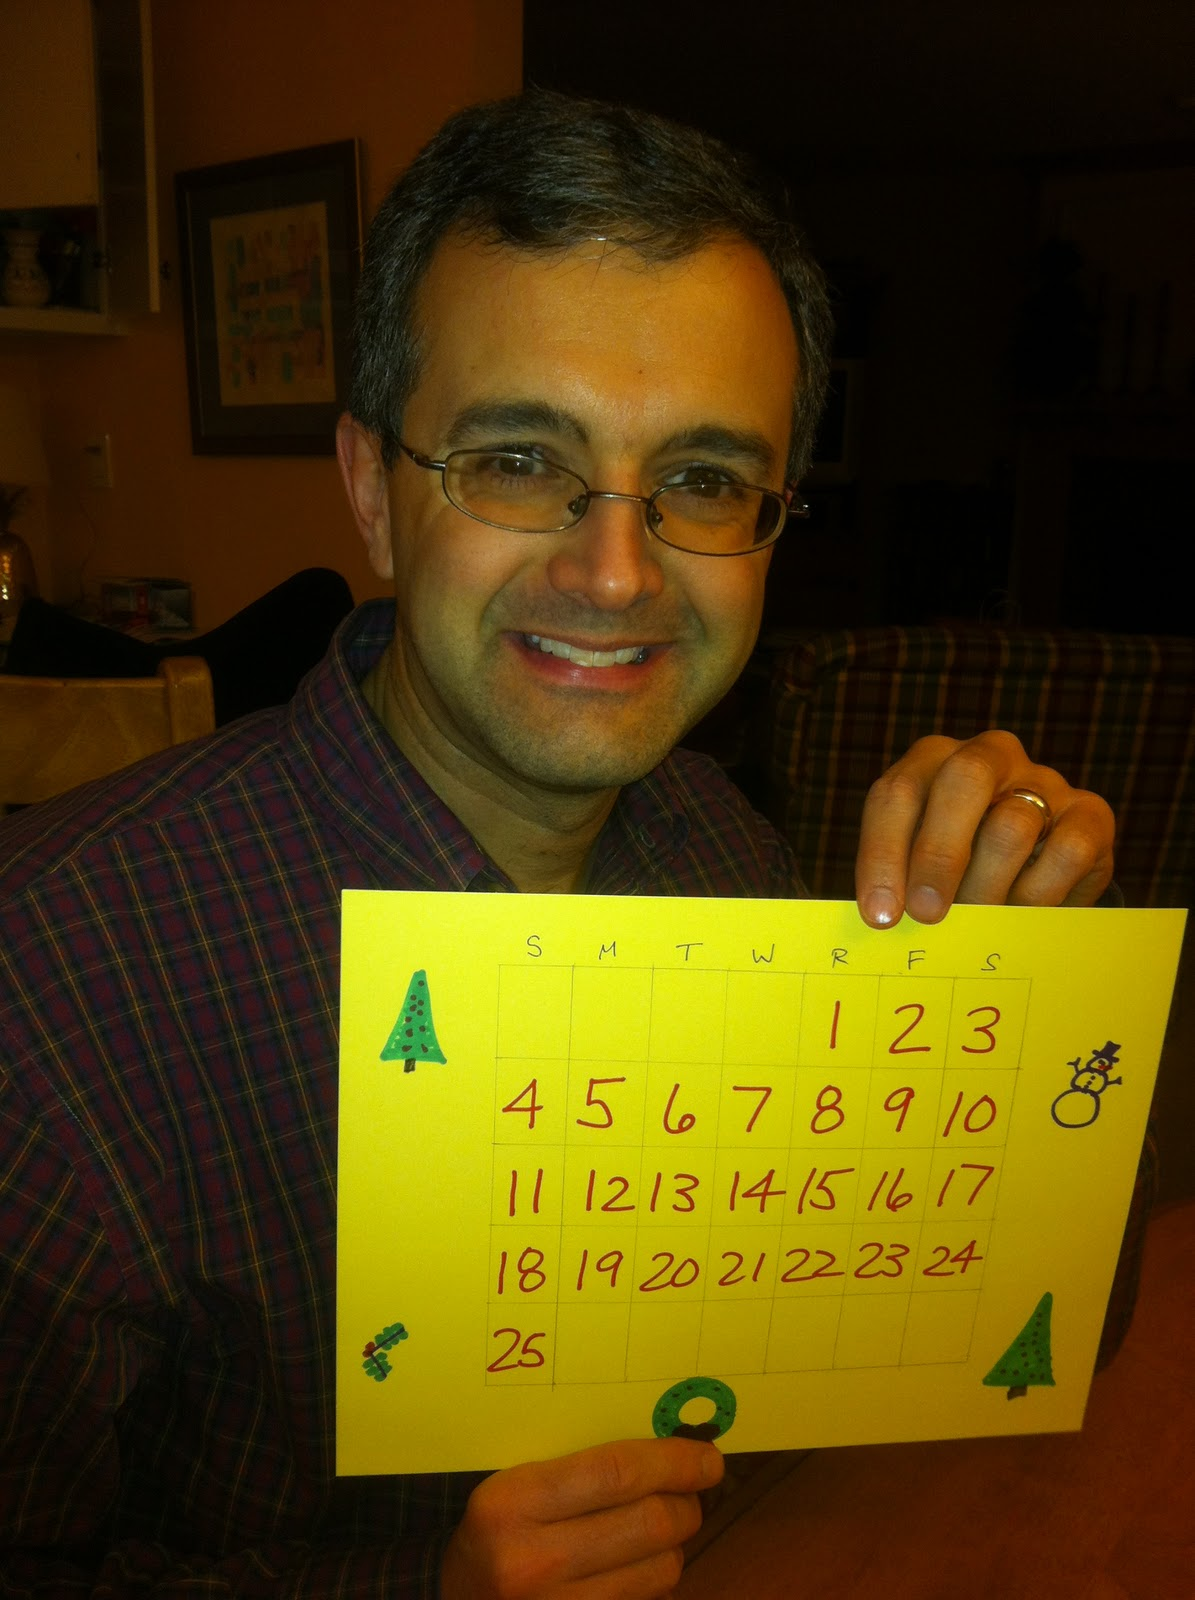 Cristina carlino family - Here S The Engineer S Perfectly Spaced Calendar Notice The Drawings My Favorite Is The Snowman